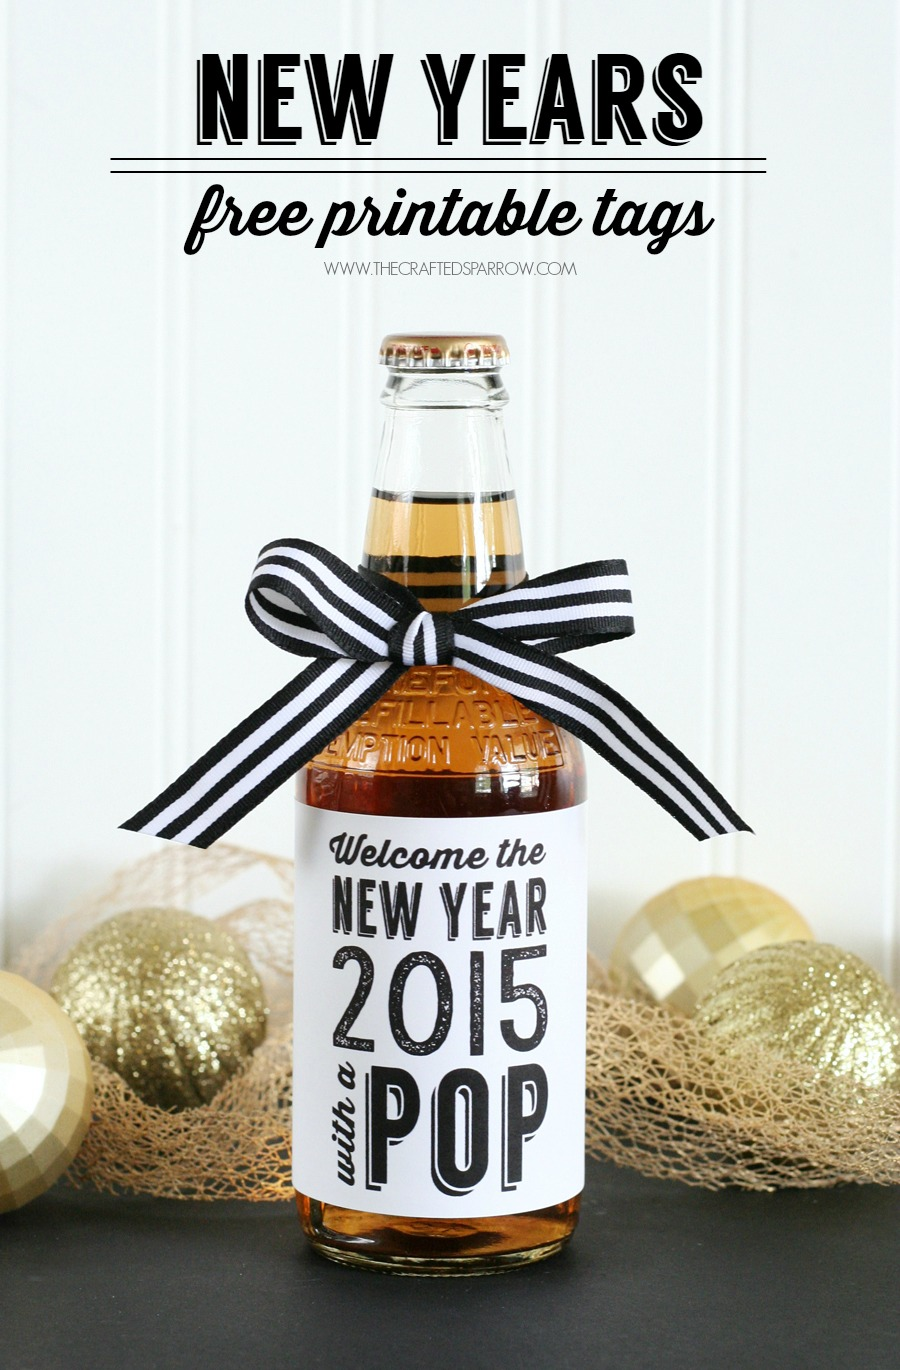 http://i2.wp.com/www.thecraftedsparrow.com/wp-content/uploads/2014/12/New-Years-POP-Printables.jpg?resize=900%2C1370